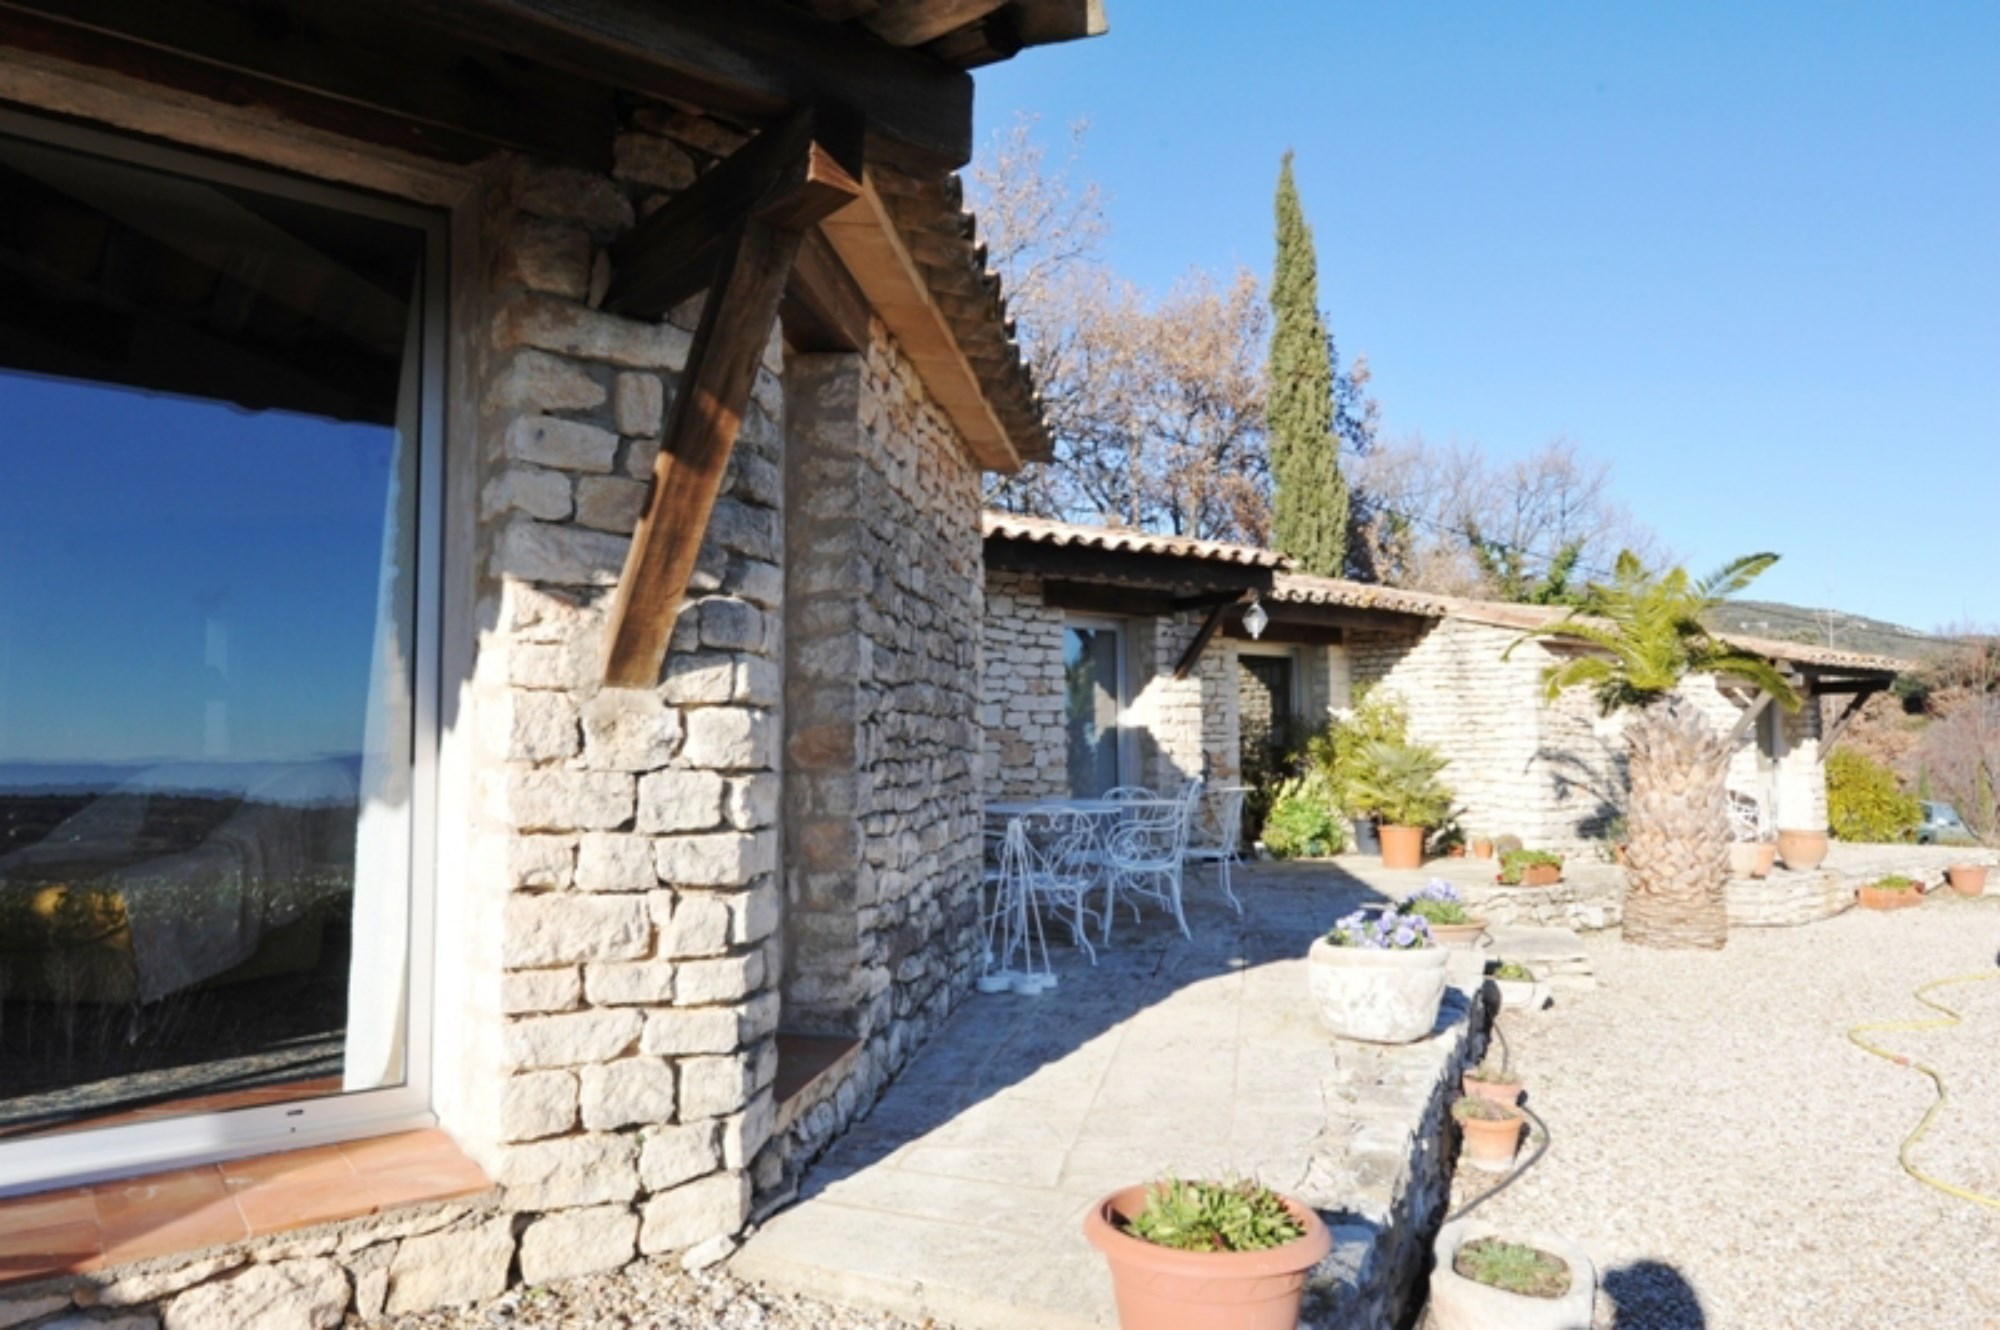 House studio and guest house with views for sale in Luberon - Rosier